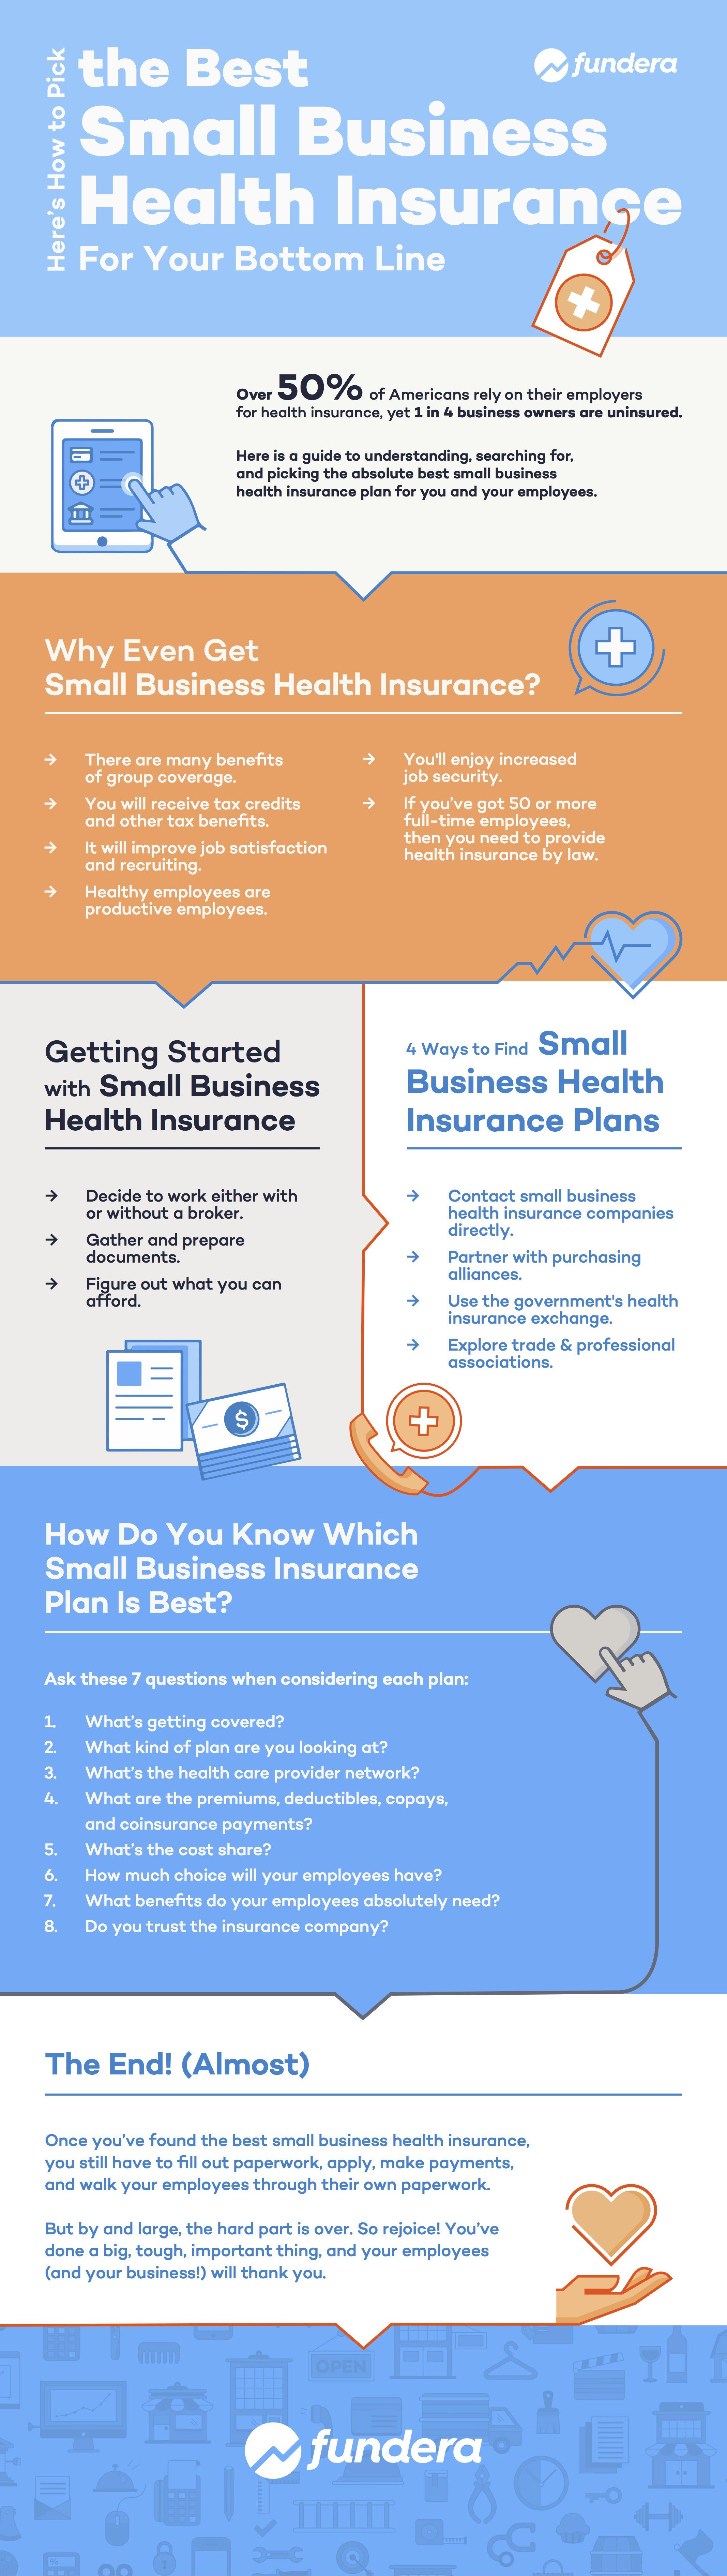 Small Business Health Insurance Options For 2020 Best Health Insurance Business Health Insurance Health Insurance Options